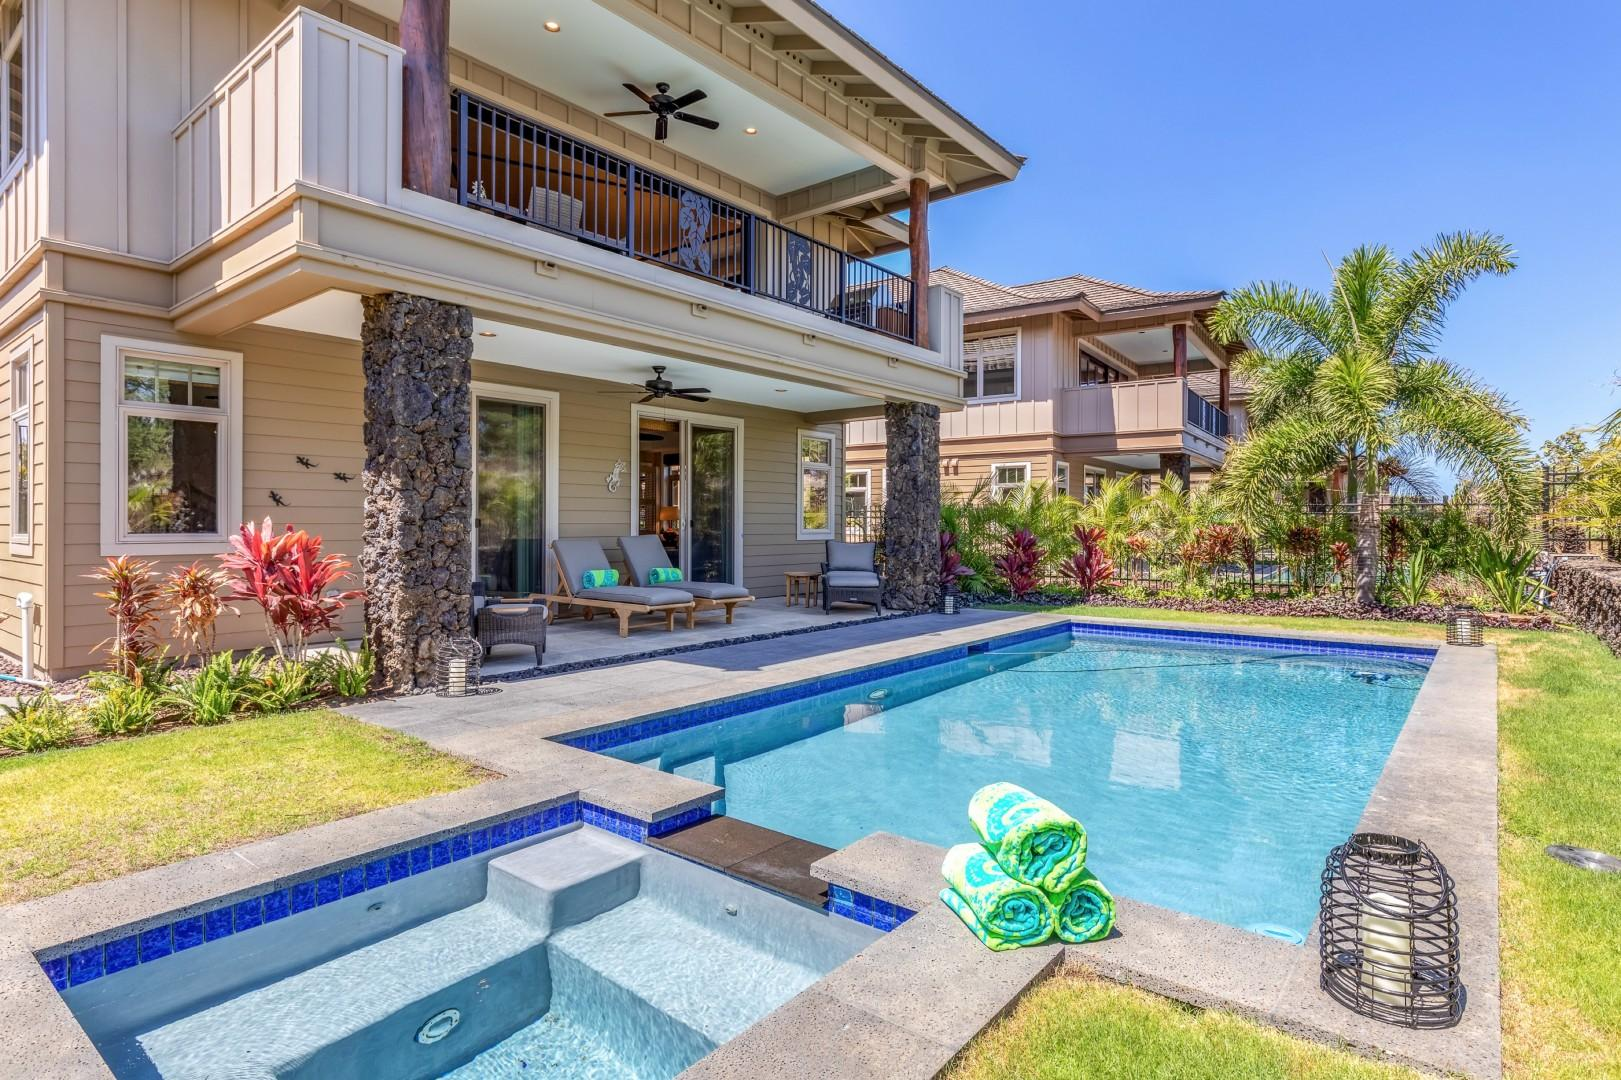 Private pool, jacuzzi and tropically landscaped garden appoint the backyard of this elegant split-level home.